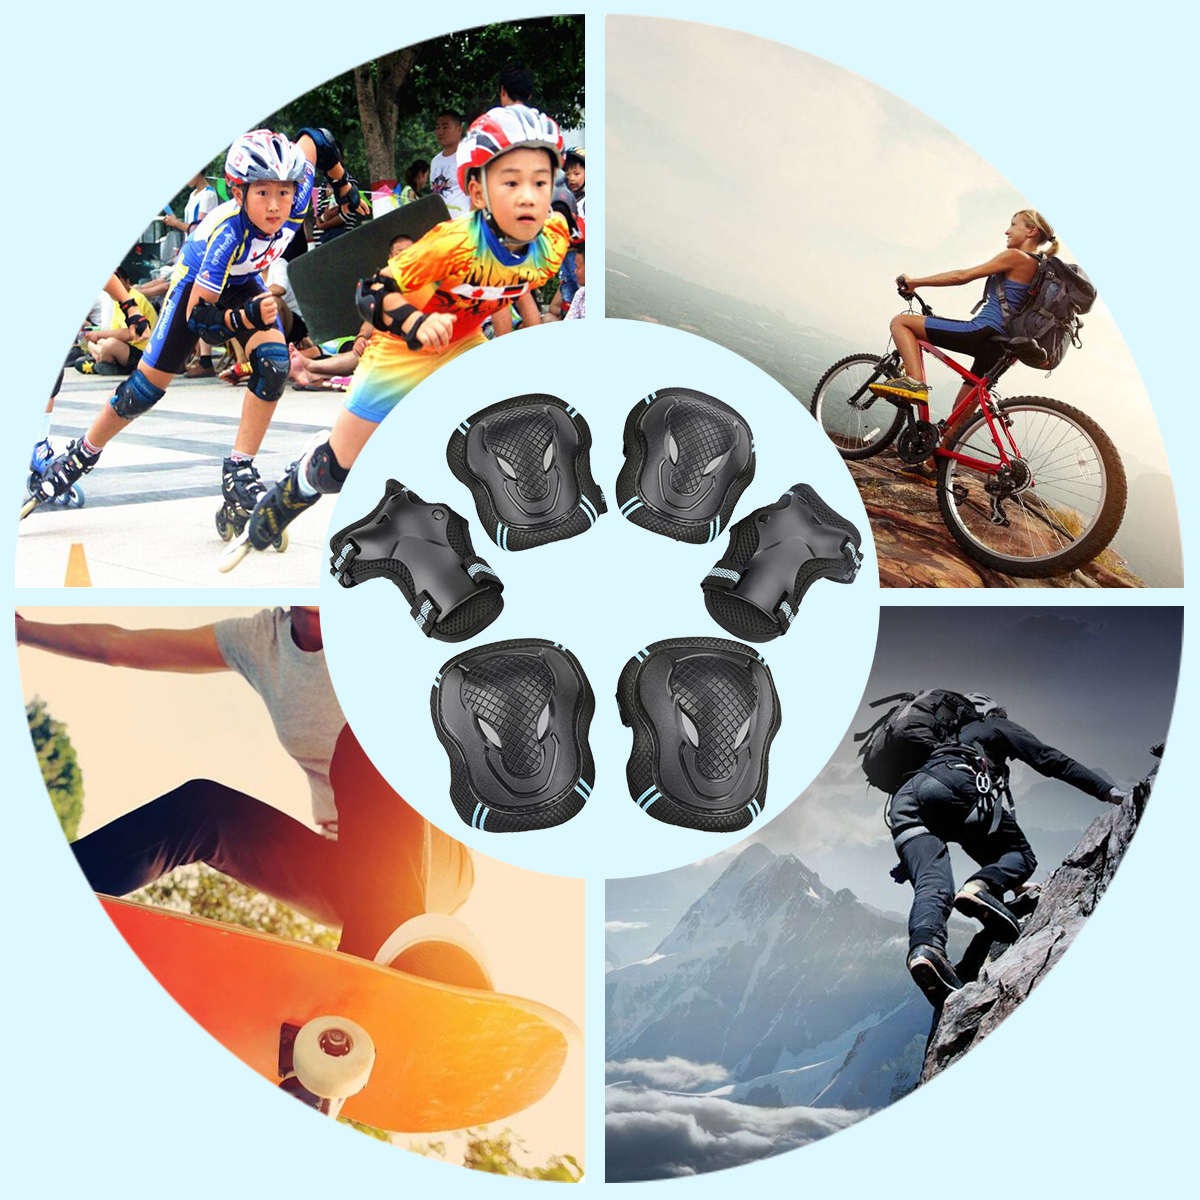 USCoco 6pcs Protector Guard Pad Gear Knee Elbow Wrist Protective Pads Sets for Skating Skateboard Cycling Biking Riding by USCOCO